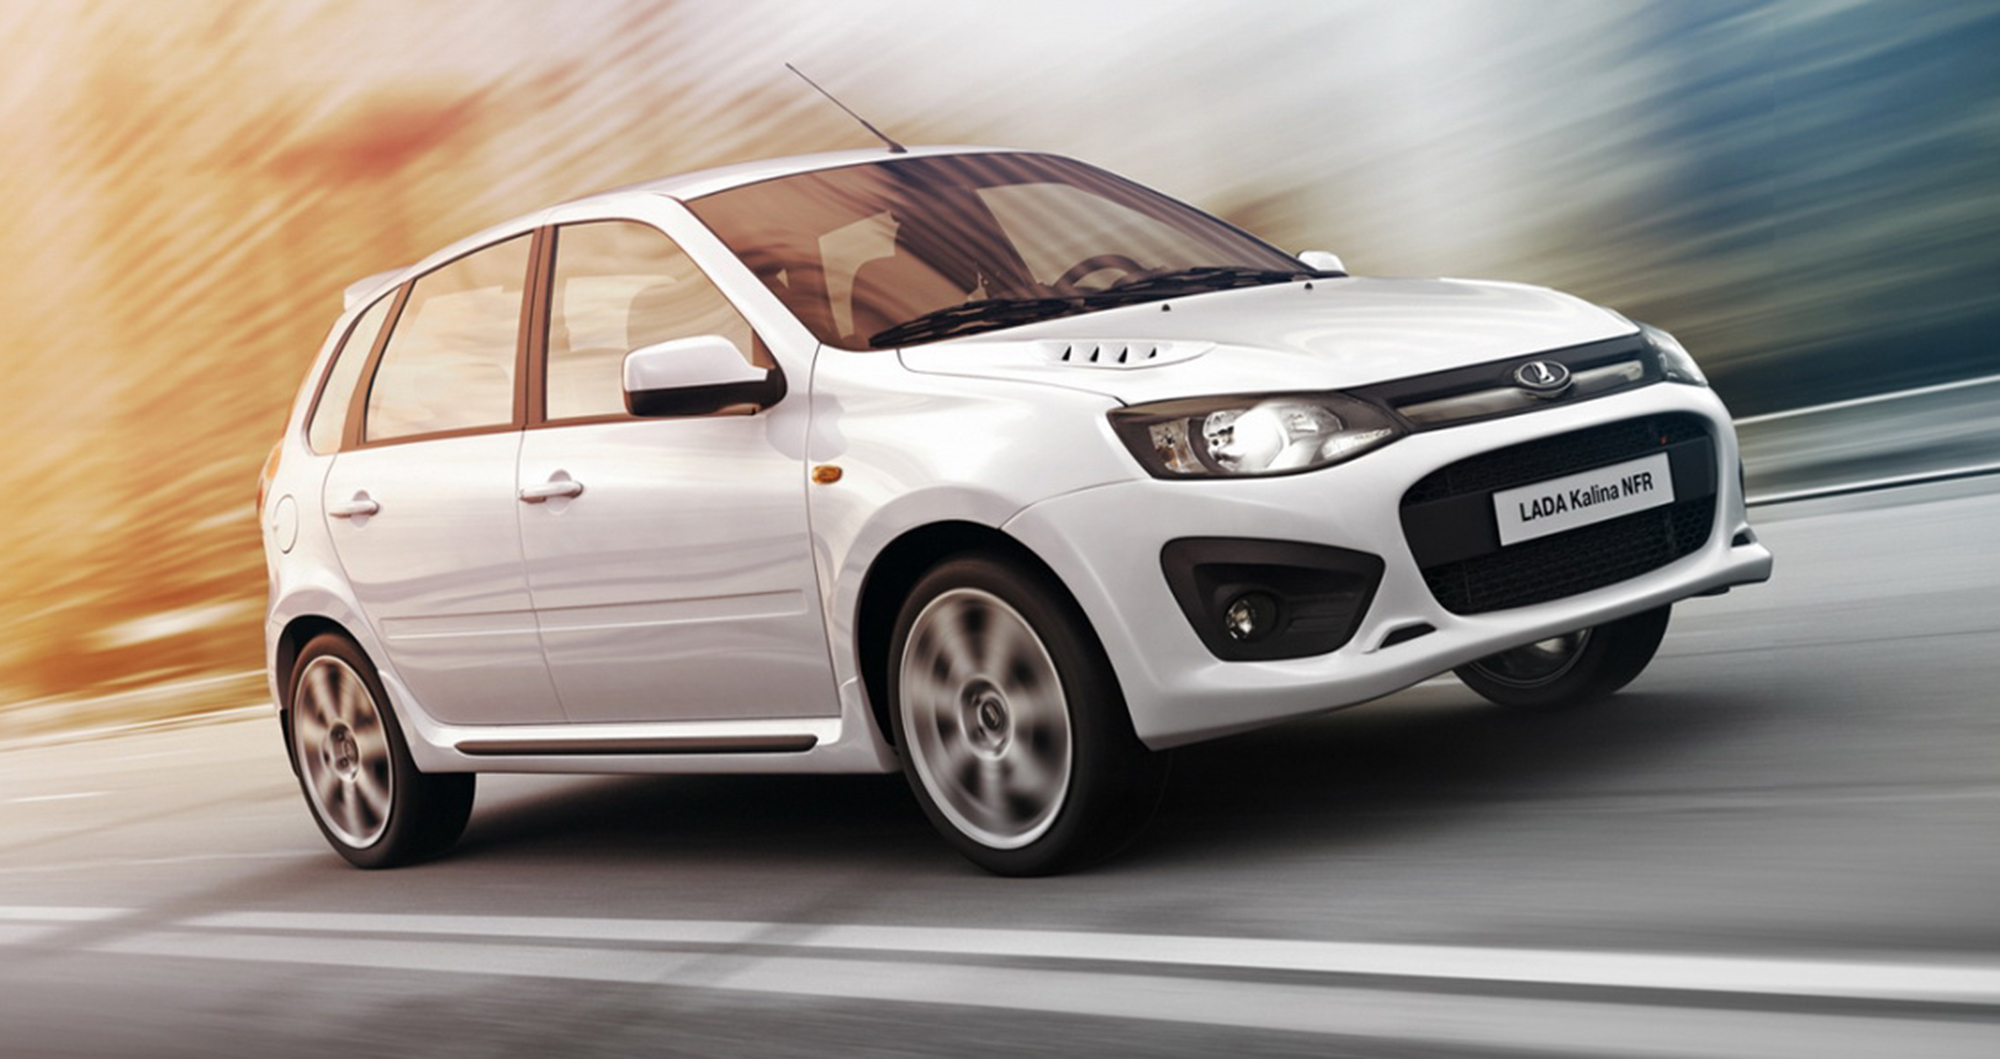 Lada Kalina hatchback: reviews of owners, price 42